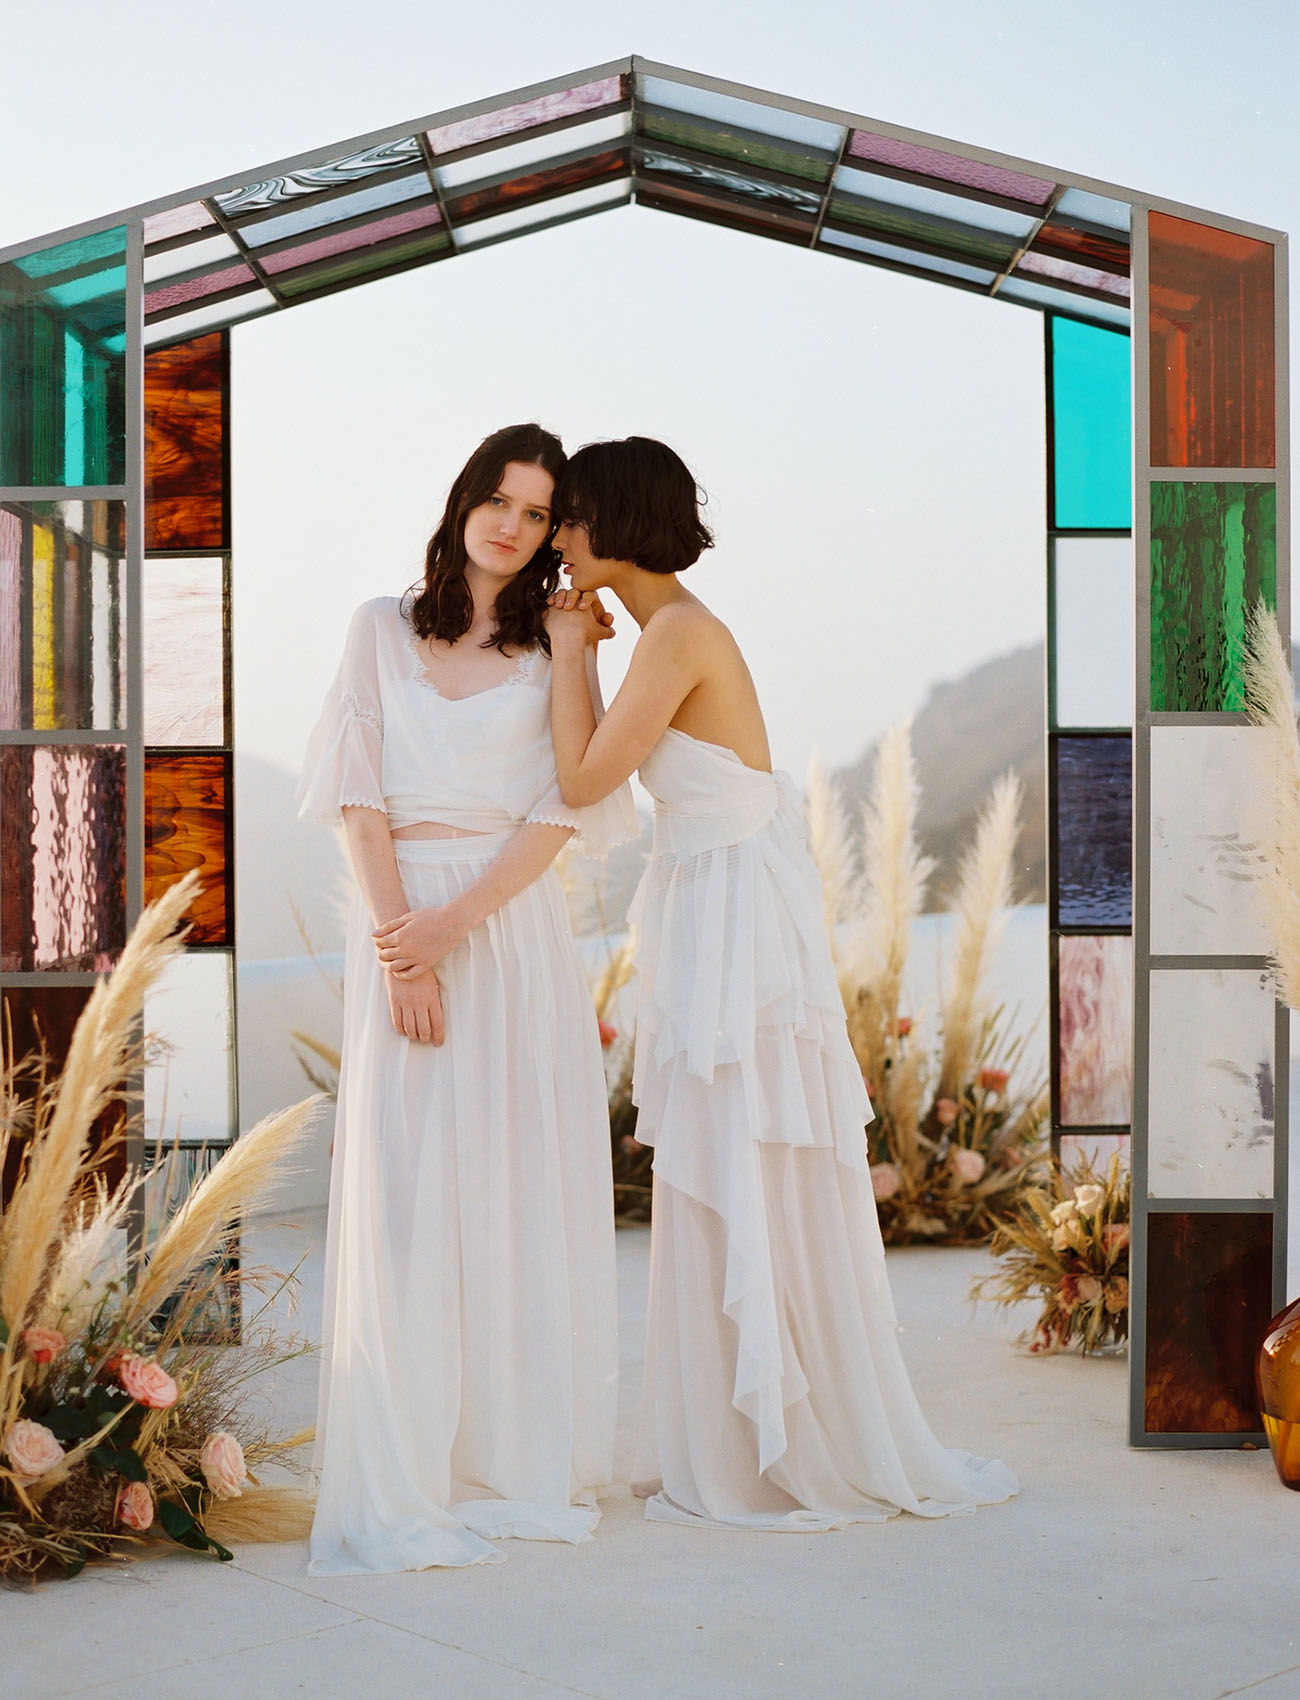 Santorini Stained Glass Wedding Inspiration